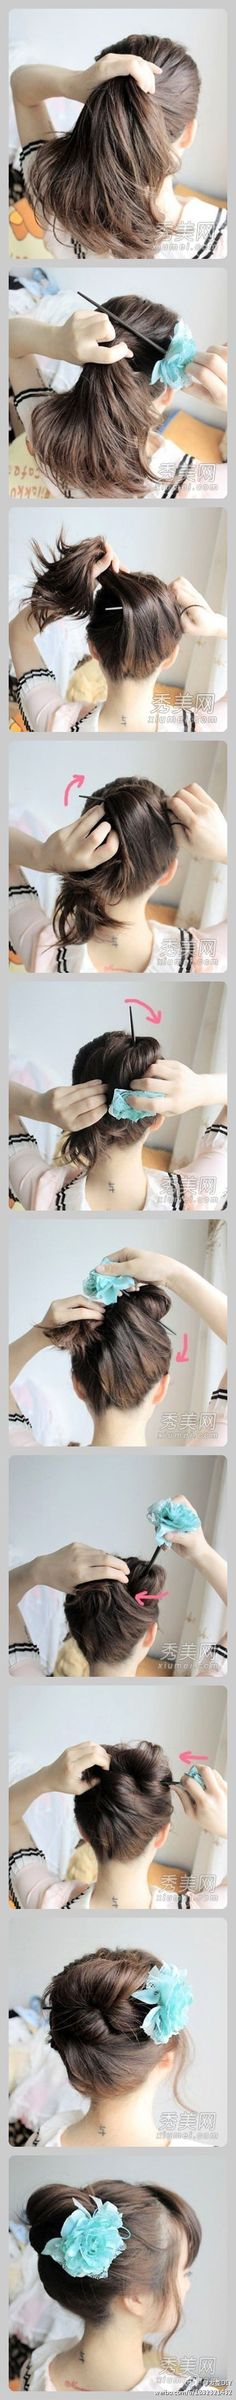 Hair Twist, Have to try it one day.